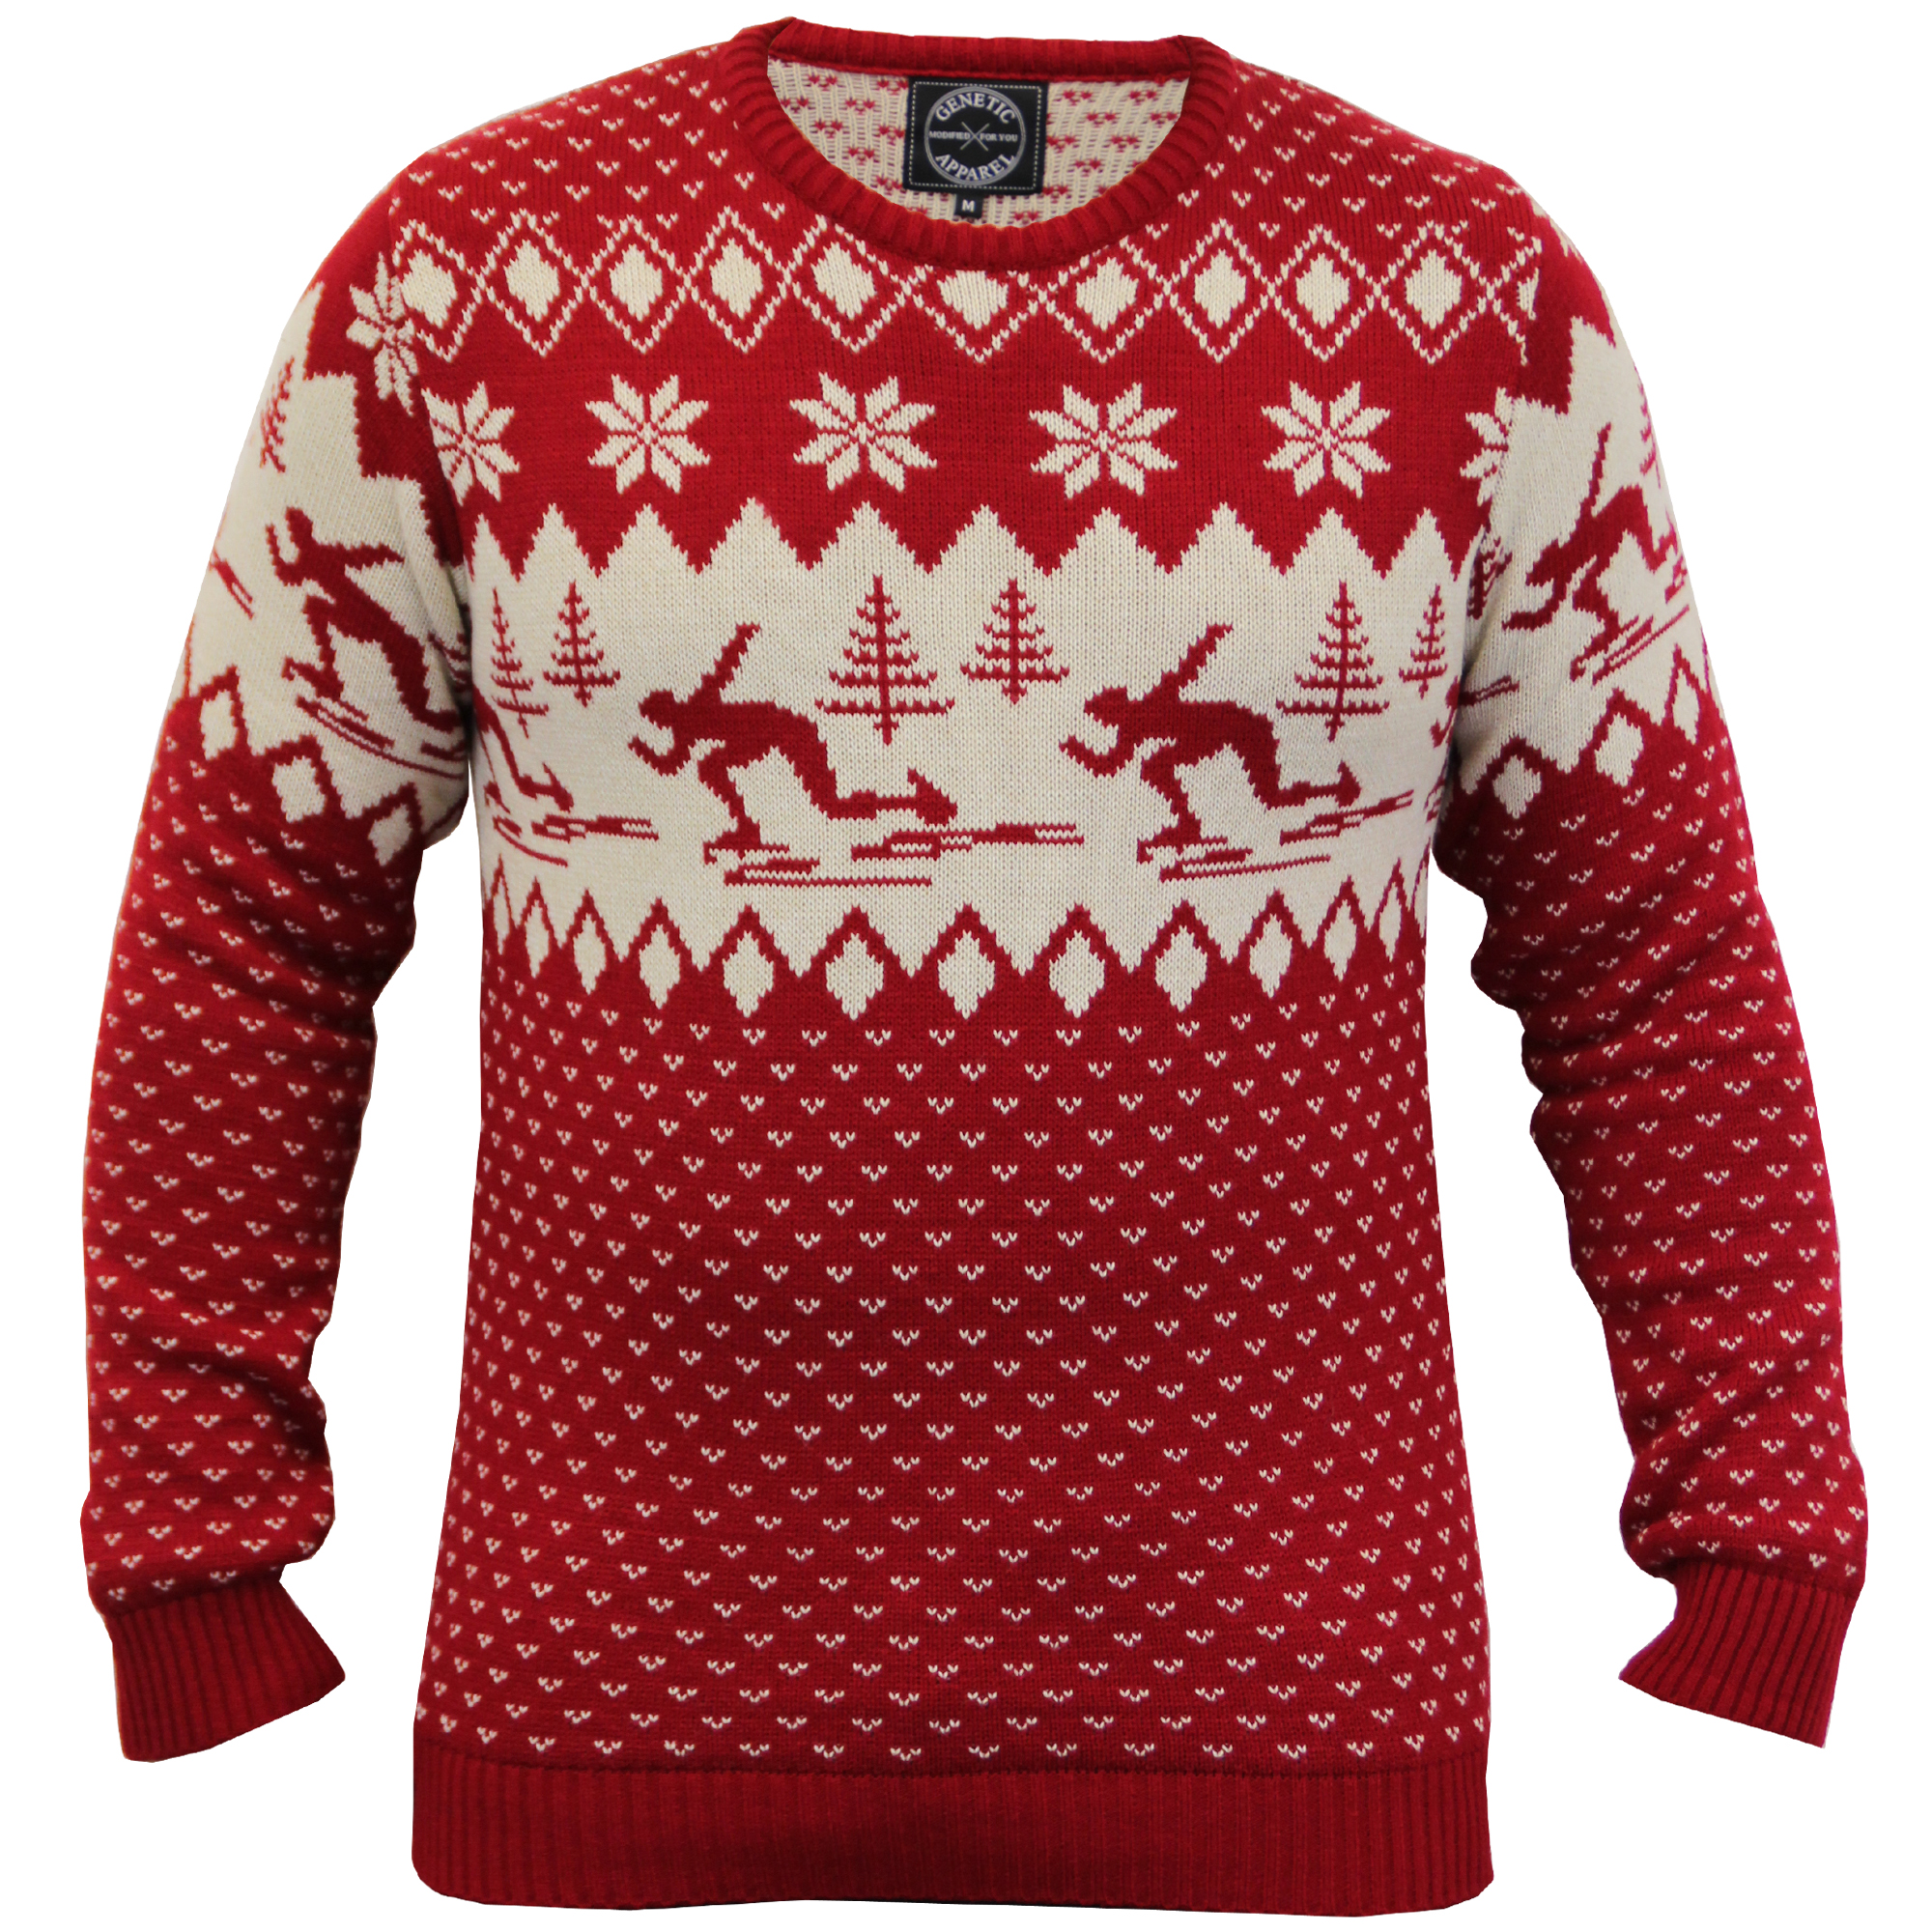 FREE Christmas jumper knitting pattern in the Weekend magazine's festive gift guide special. FREE Christmas jumper knitting pattern in the Weekend magazine's festive gift guide special.